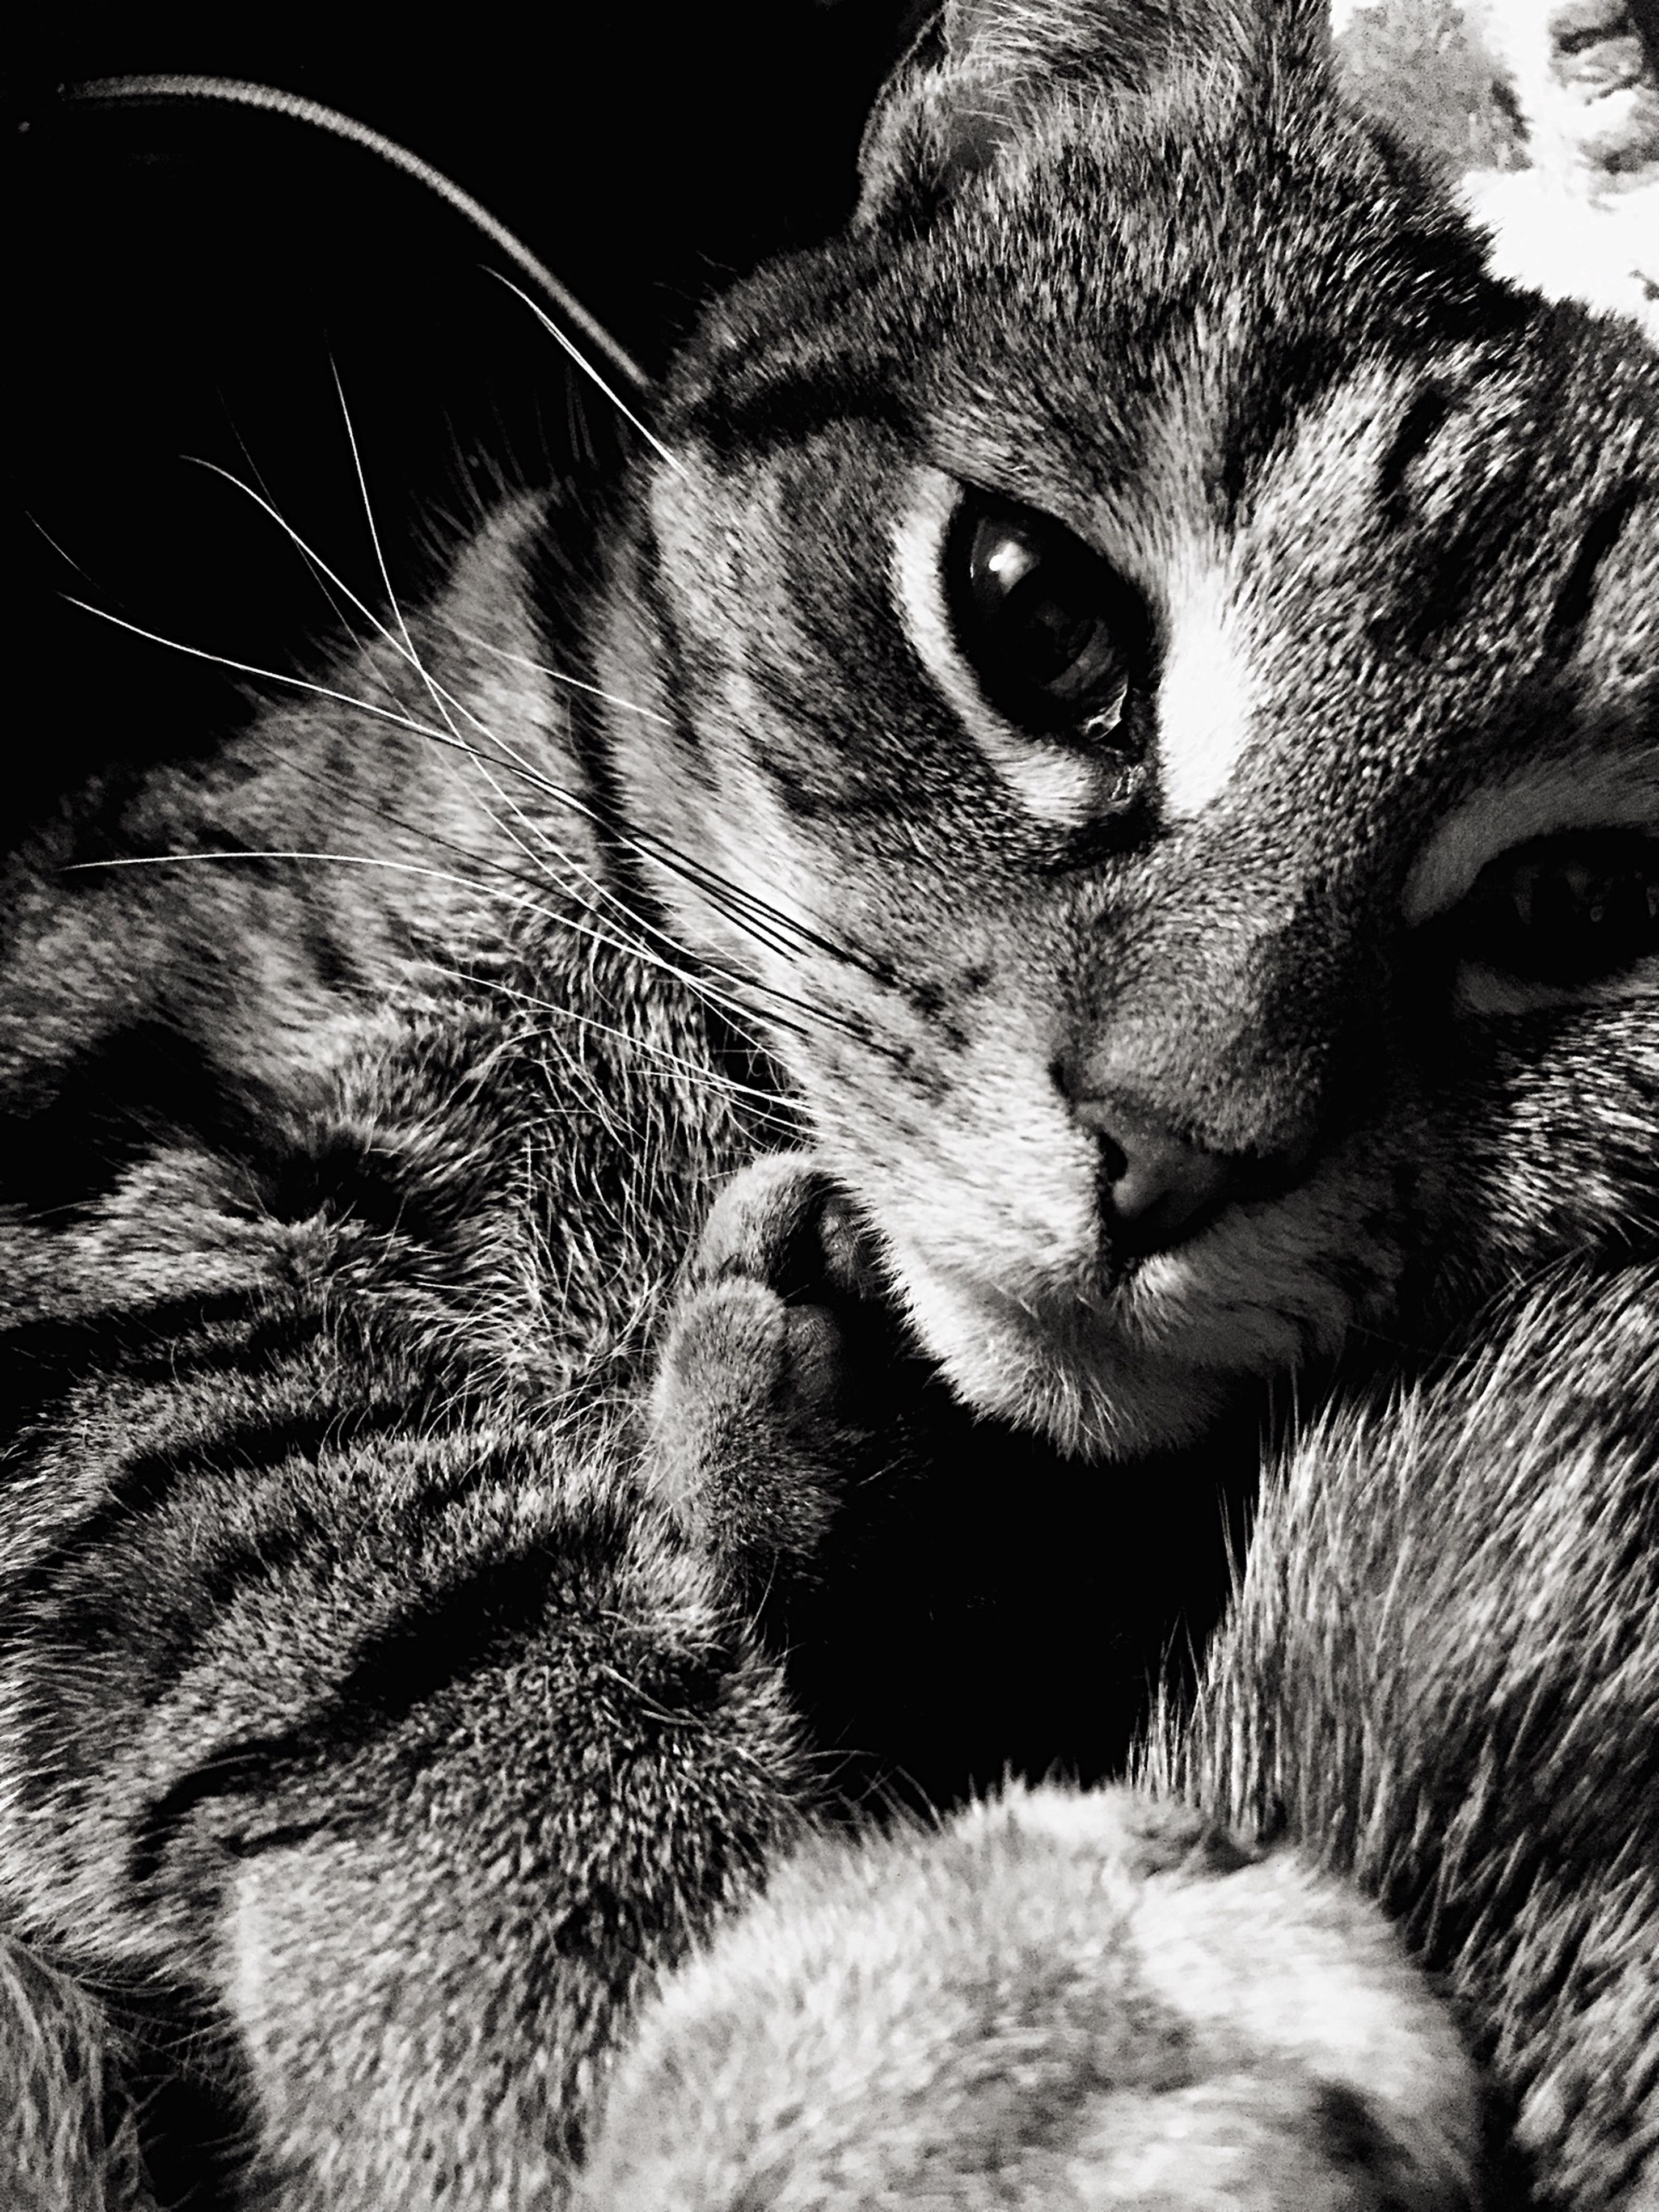 animal themes, pets, one animal, mammal, domestic animals, domestic cat, feline, whisker, cat, close-up, animal head, relaxation, looking away, indoors, animal body part, focus on foreground, portrait, resting, snout, animal